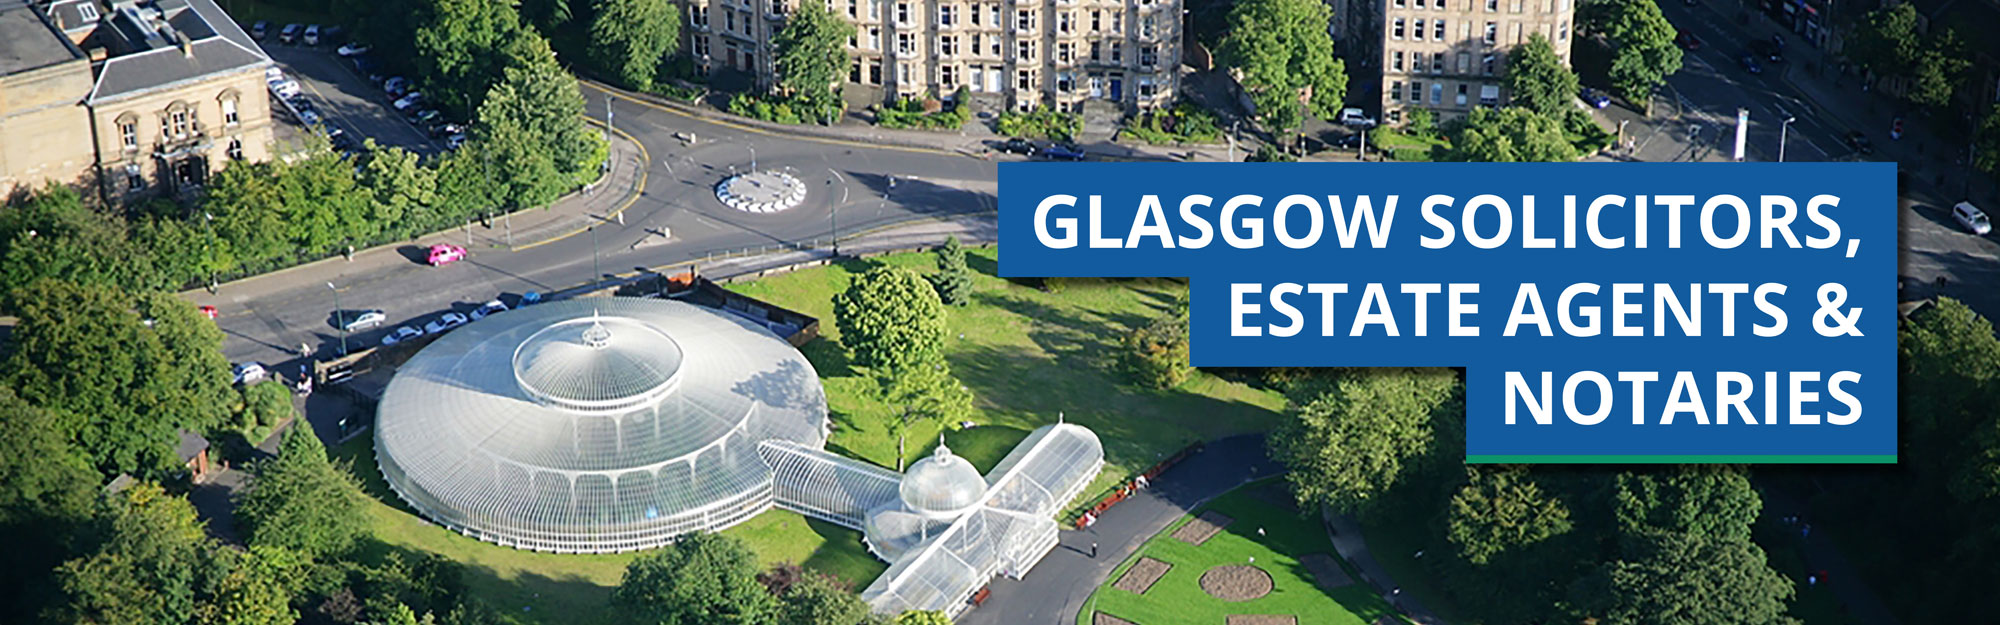 Ramsay & Co Glasgow Solicitors, Estate Agents & Notaries